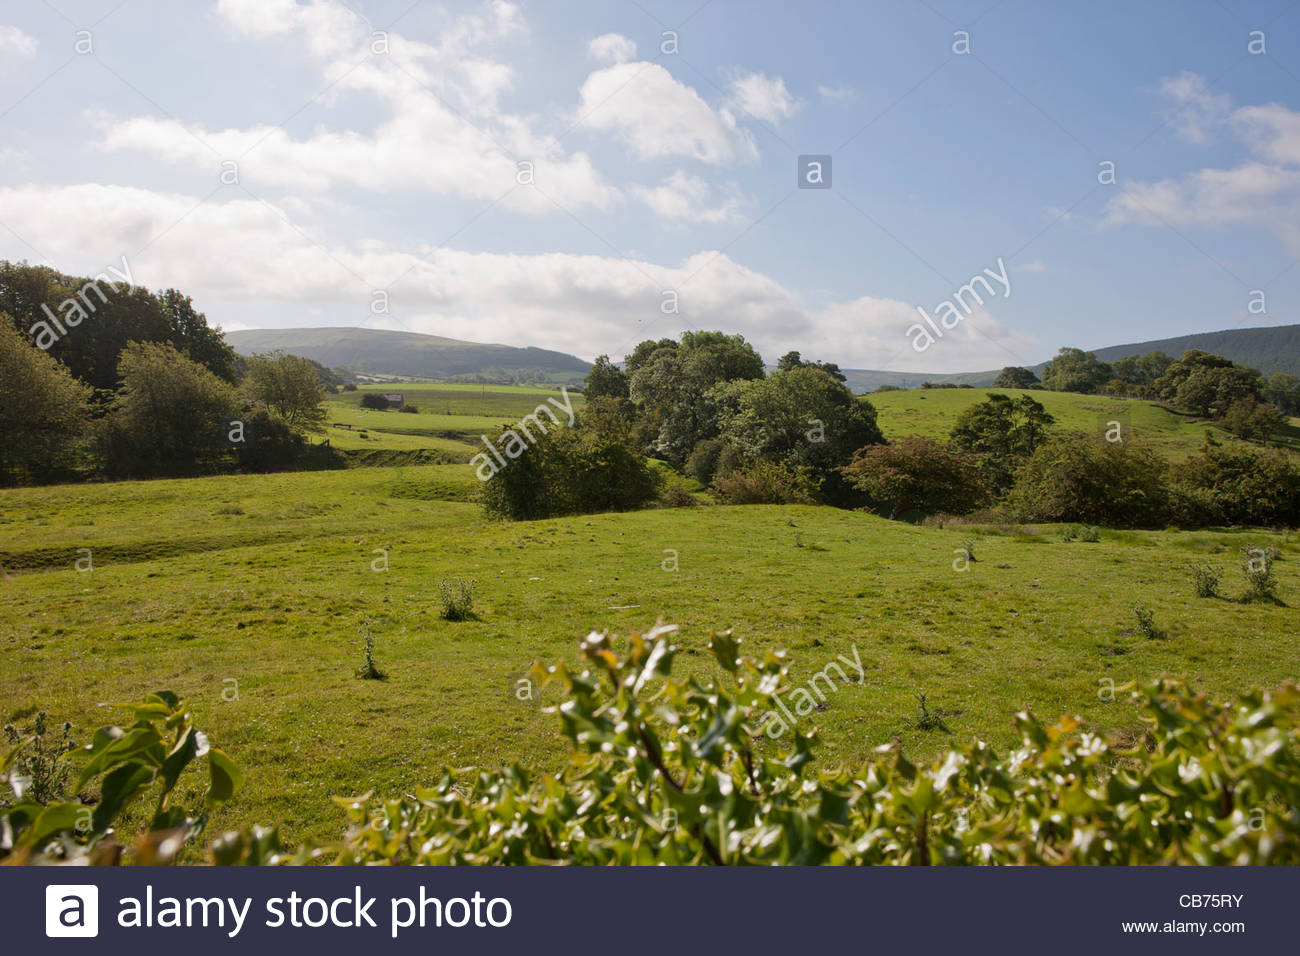 Whorlton - earthwork are all that remains of old village and burgh Abandoned village of Whorlton, North Yorkshire - Stock Image